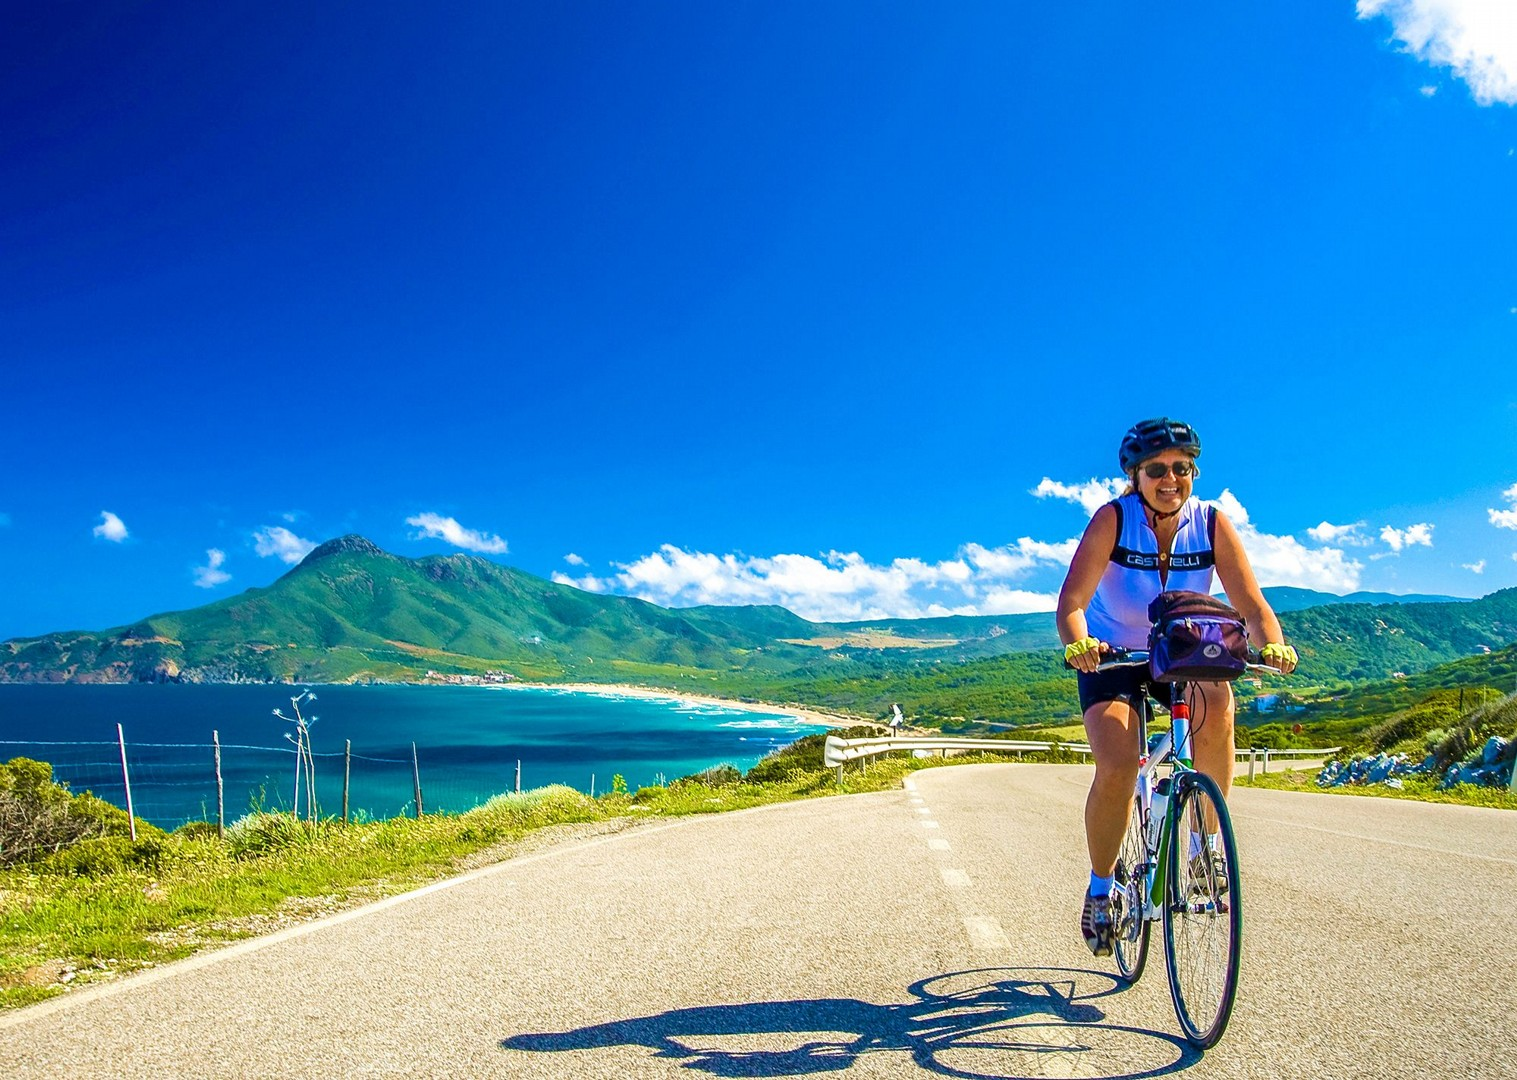 leisure-self-guided-cycling-holiday-italy-sardinia.jpg - Italy - Sardinia - Island Flavours - Self-Guided Leisure Cycling Holiday - Italia Leisure and Family Cycling